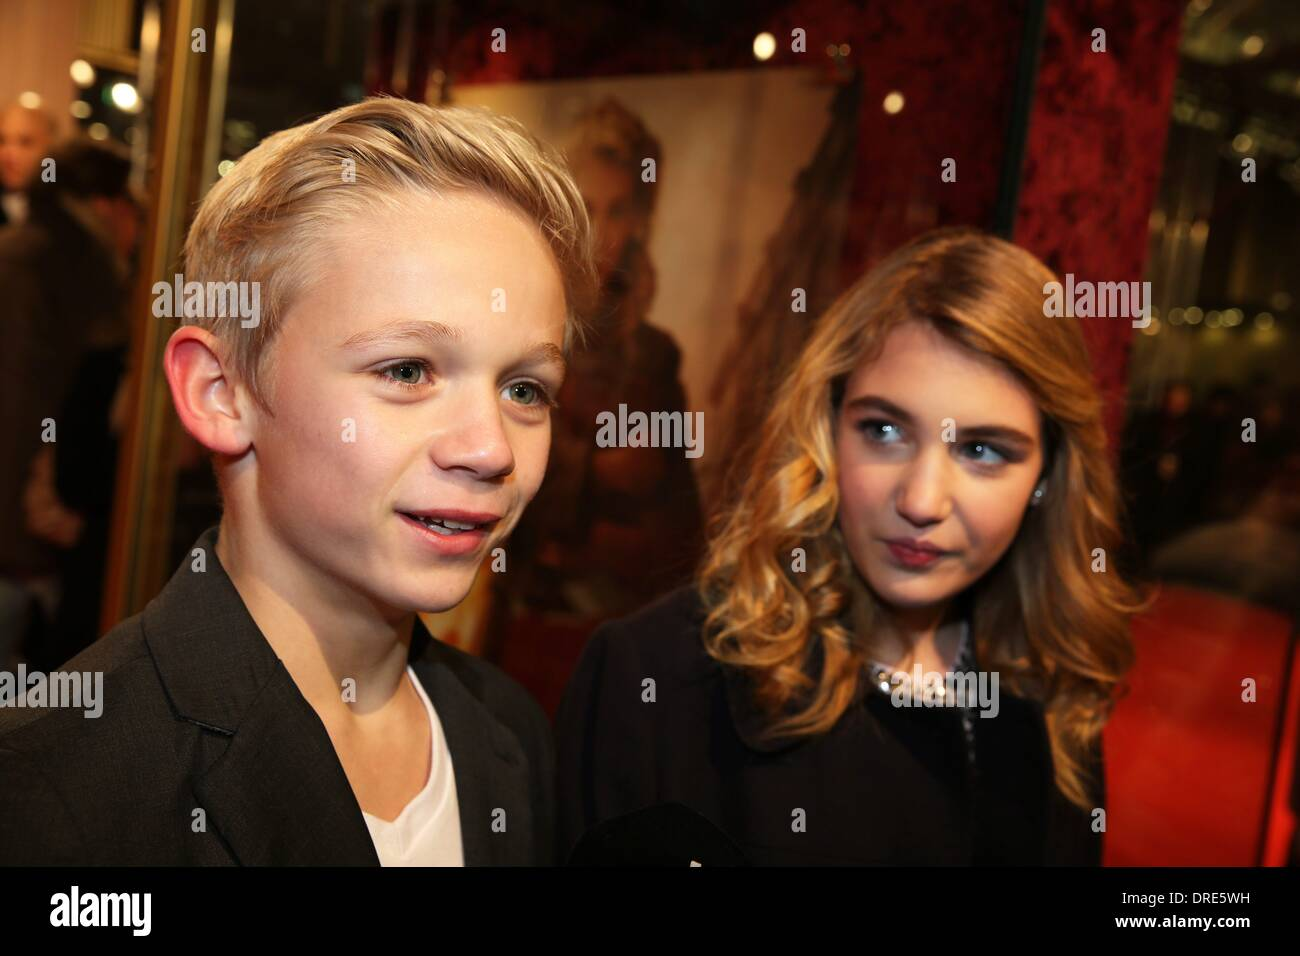 Nico liersch family - Actress Sophie Nelisse And Actor Nico Liersch At The Premiere Of The Movie The Book